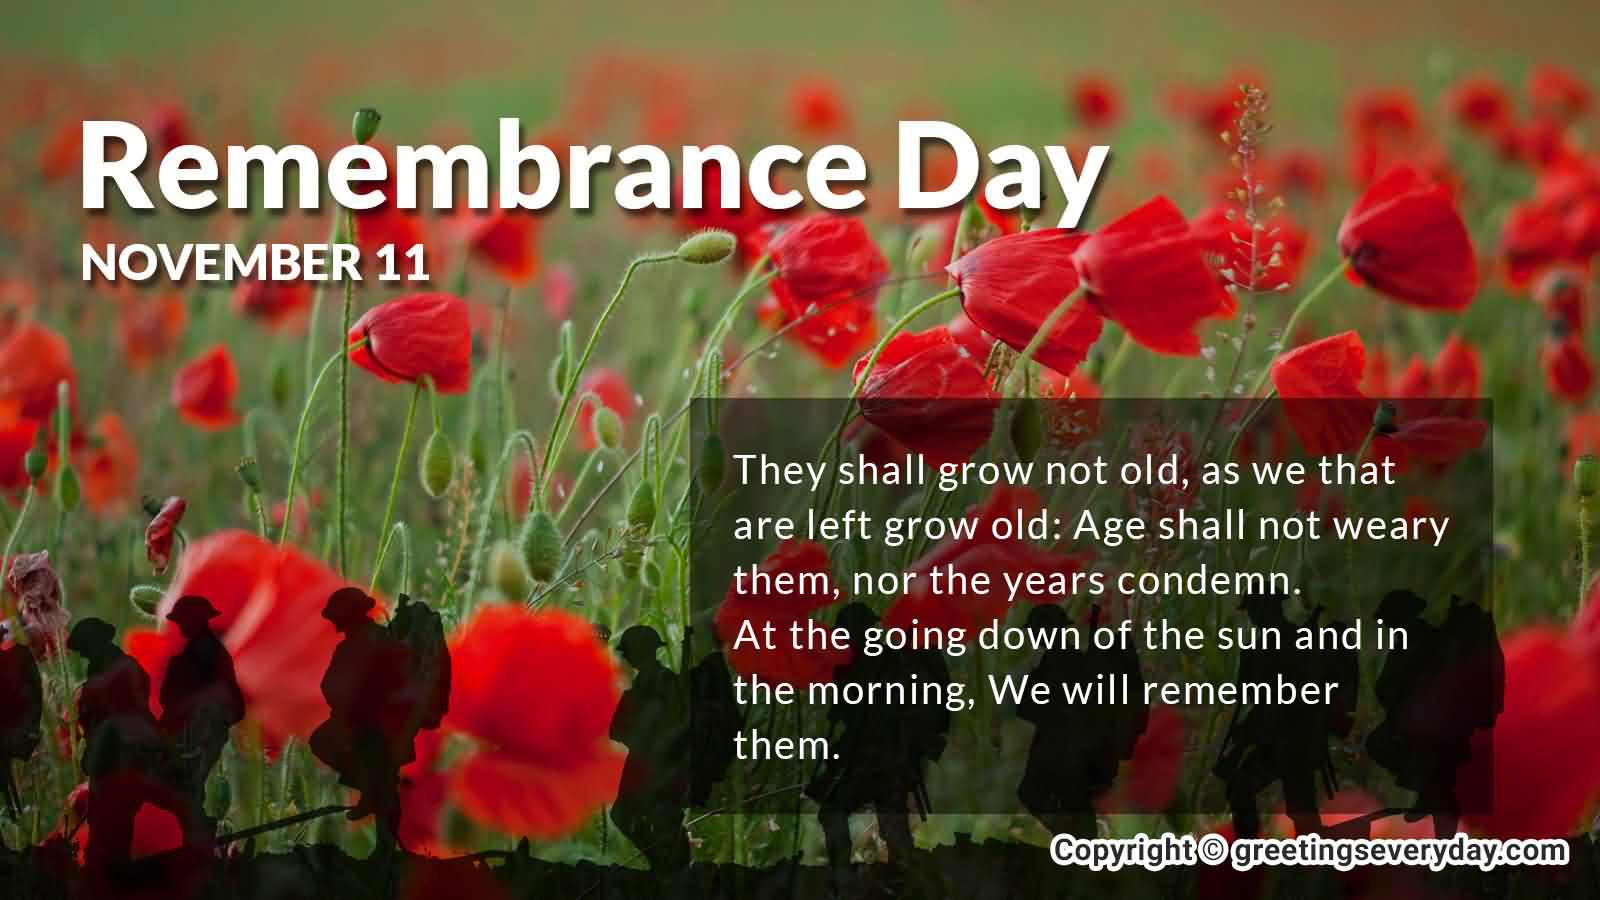 7-Remembrance Day Wishes